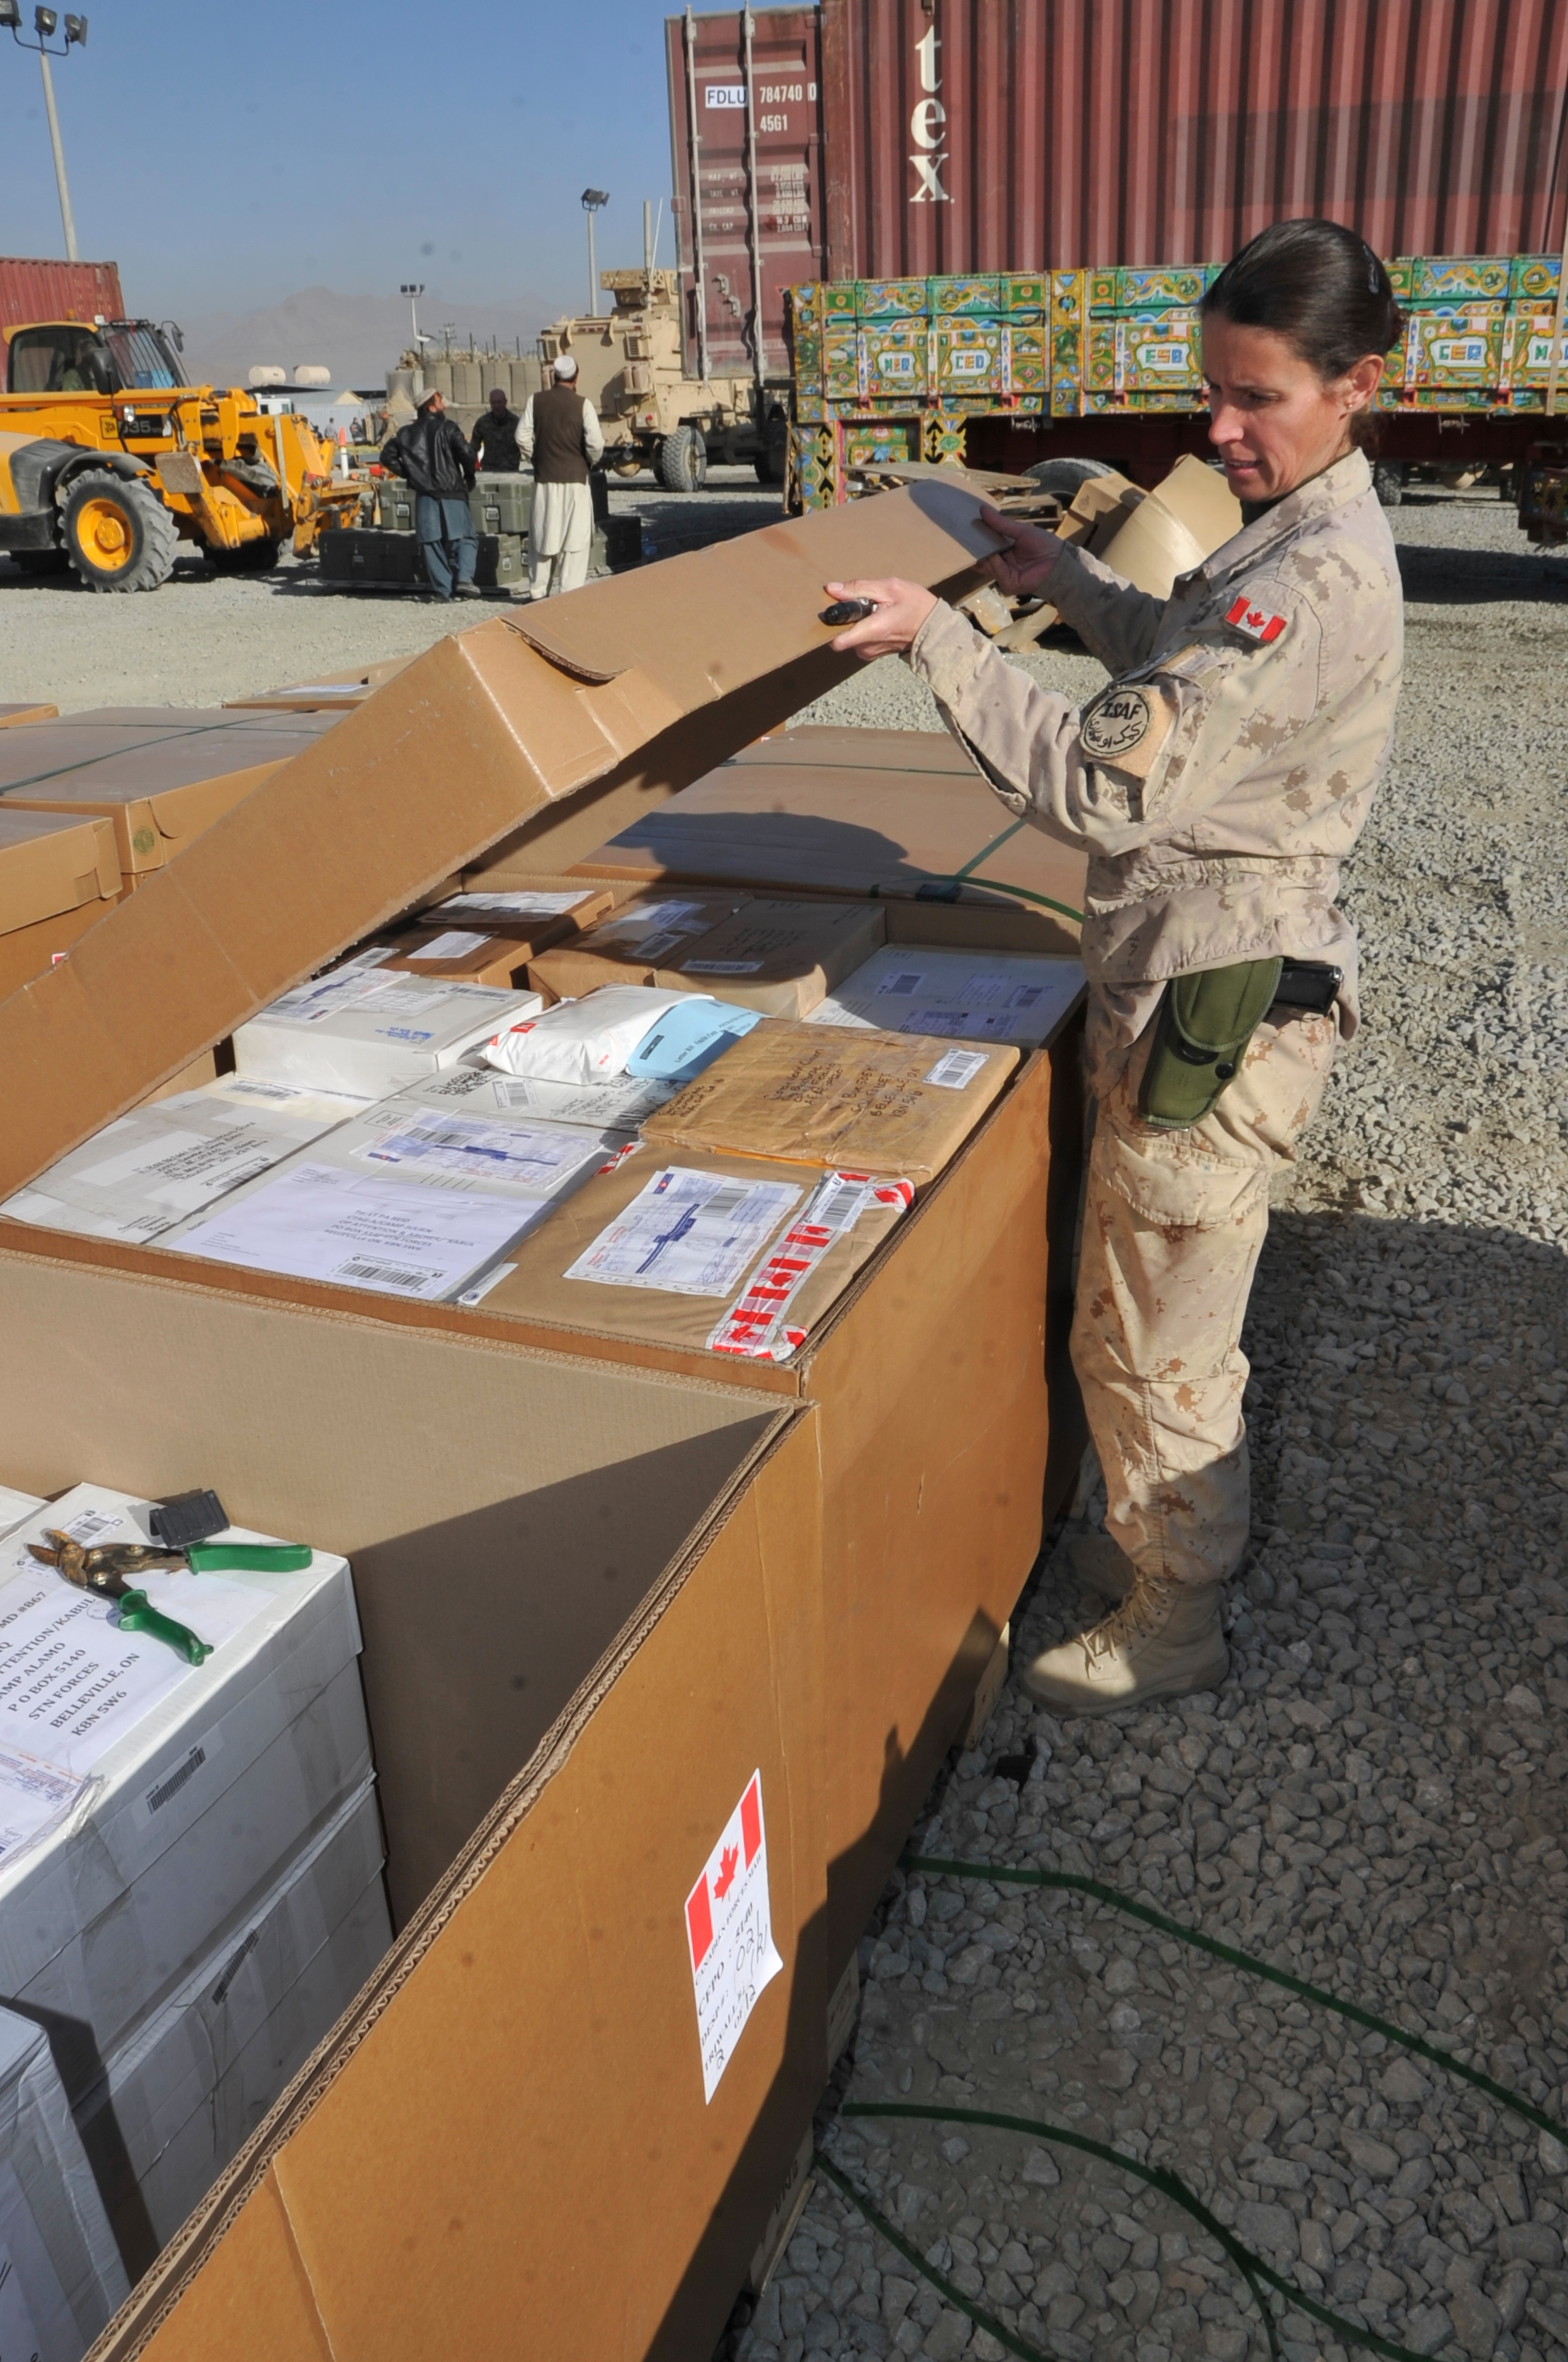 One thing that makes Christmas special for Canadians serving overseas is the deluge of letters and parcels received from friends, family and even strangers back home. Here, Master Corporal Jennifer Jodrey, assistant postmaster for Canadian Armed Forces members based in Afghanistan in 2011, opens a container of parcels at Camp Phoenix in Kabul. The mail was collected at 8 Wing Trenton, Ontario and flown to Kabul. PHOTO: Major Glen Parent